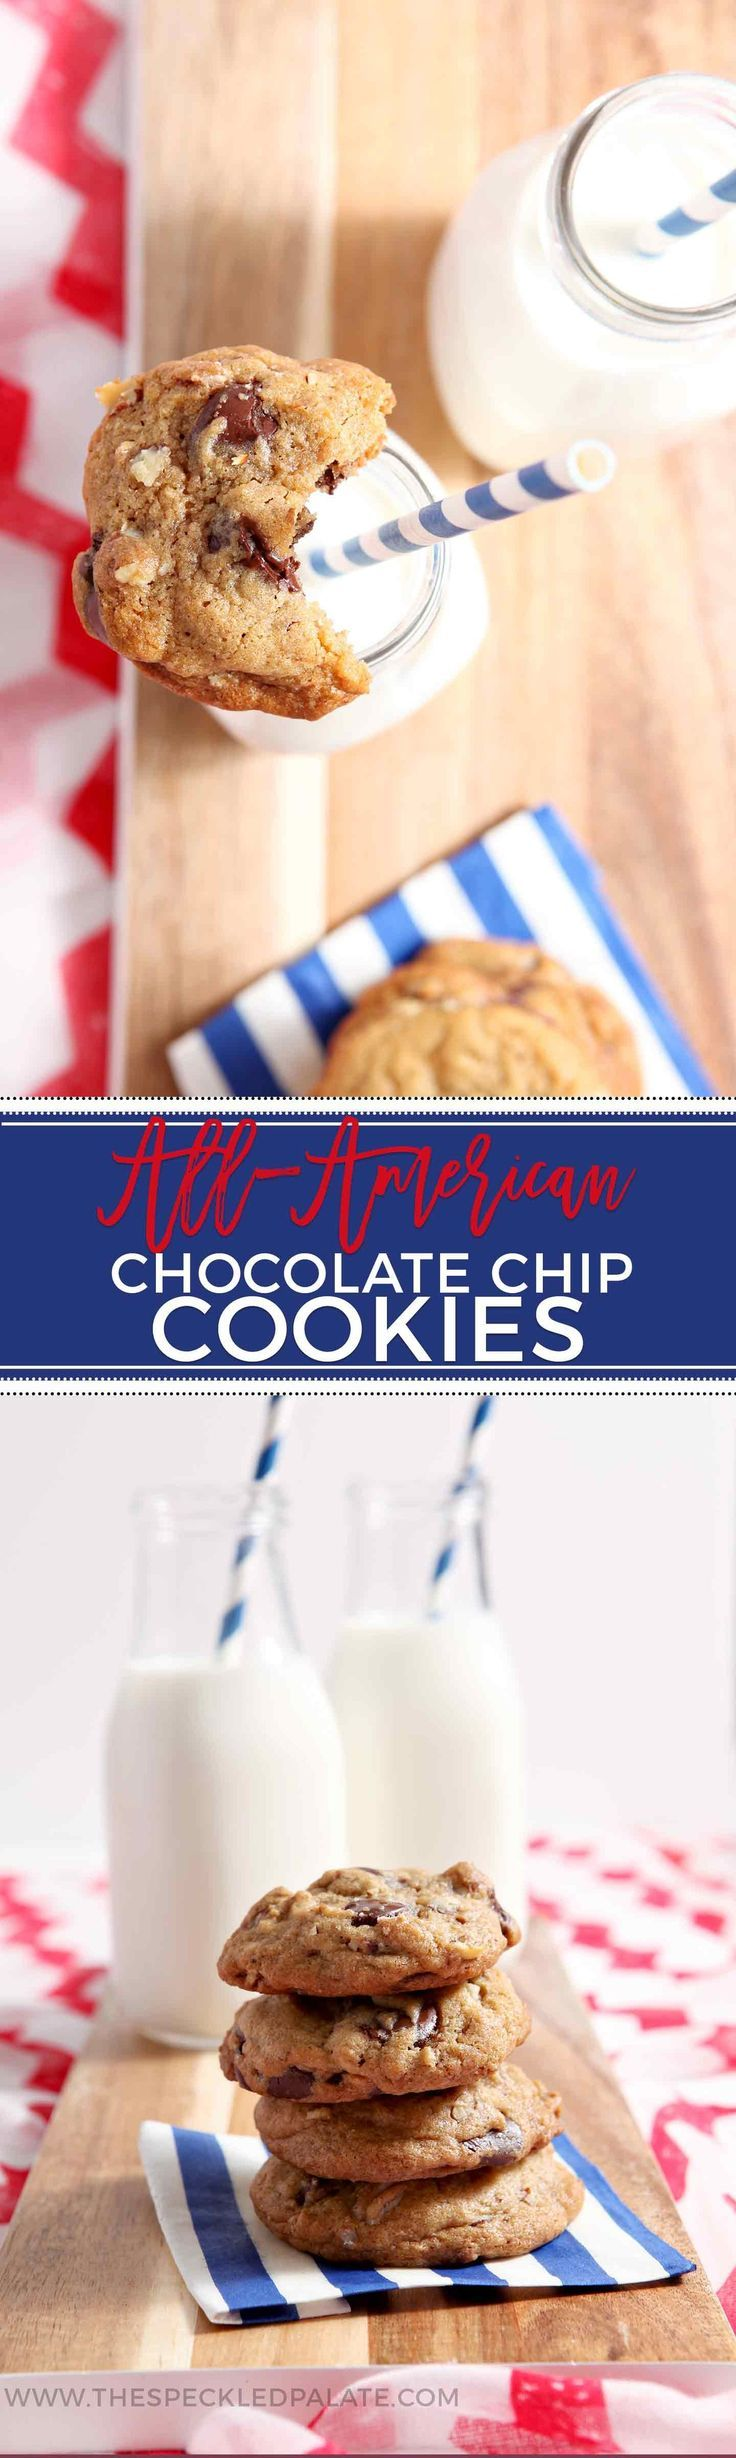 All-American Chocolate Chip Cookies are ooey, gooey and utterly delicious! These cookies are best served warm with a cold glass of milk. #recipe #cookies